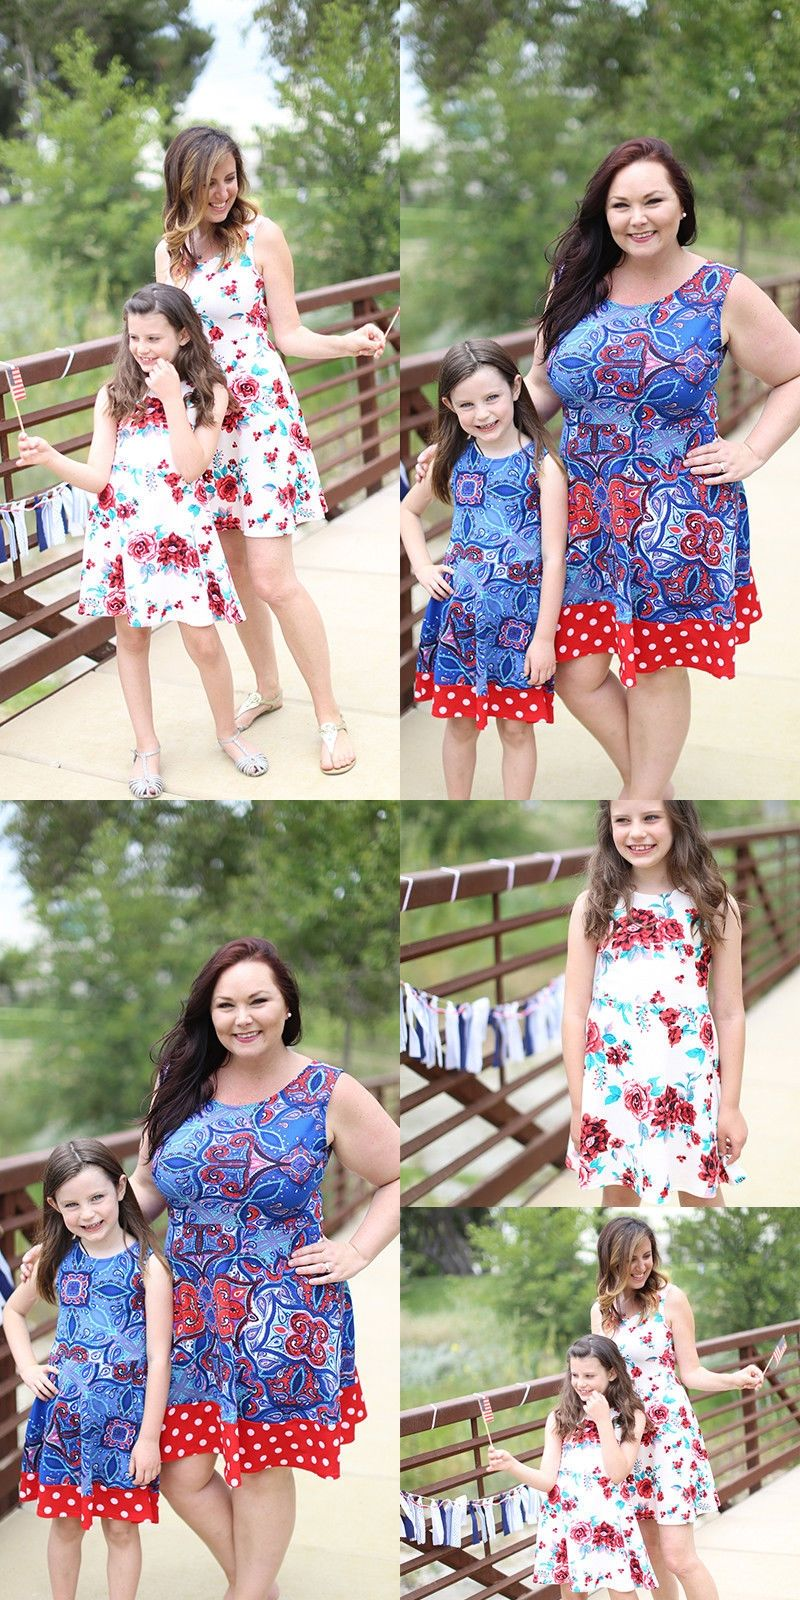 2018 Brand New Family Matching Casual Dress Mother Daughter Women Girl Soft  Party Summer Beach Dress Sleeveless Sundress Clothes 591a451b37e2